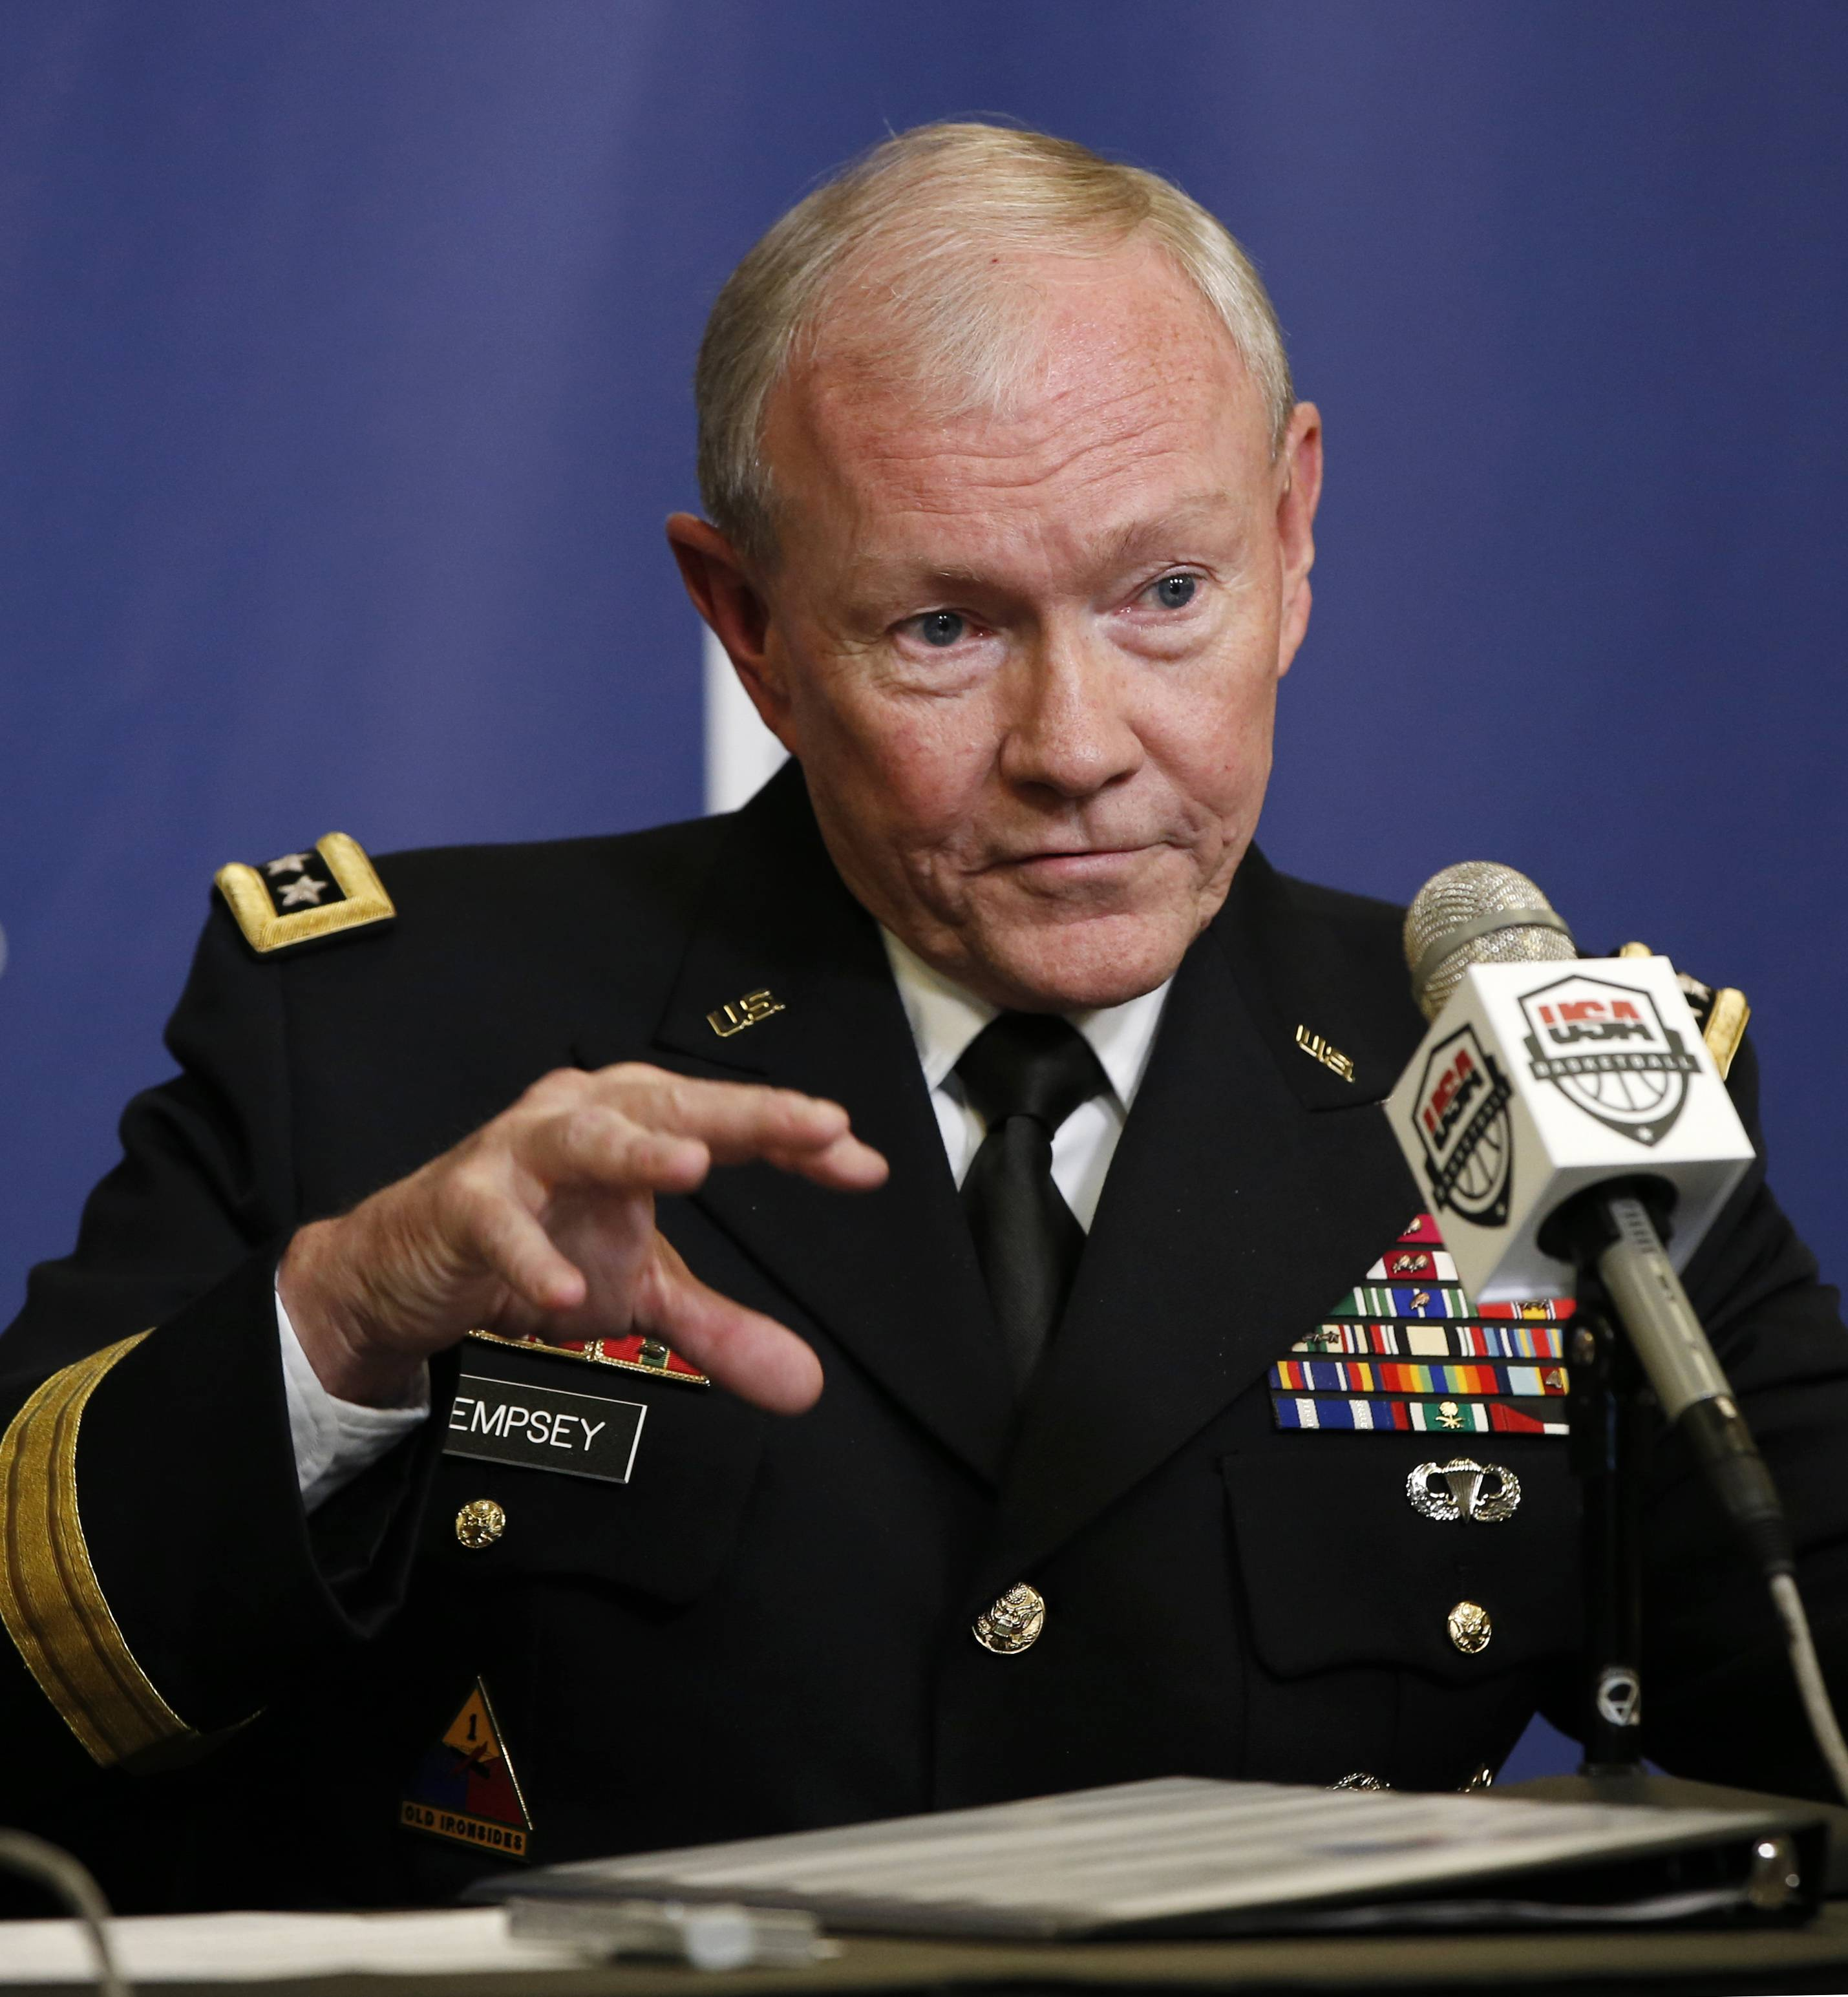 During a Pentagon briefing Thursday, Joint Chiefs Chairman Gen. Martin Dempsey said it's possible to contain the Islamic State militants, but it can't be done permanently without going after the group in Syria. Speaking to reporters with Defense Secretary Chuck Hagel, Dempsey said he wasn't predicting U.S. airstrikes in Syria, but said the problem must be addressed diplomatically, politically and militarily by America and its regional partners.